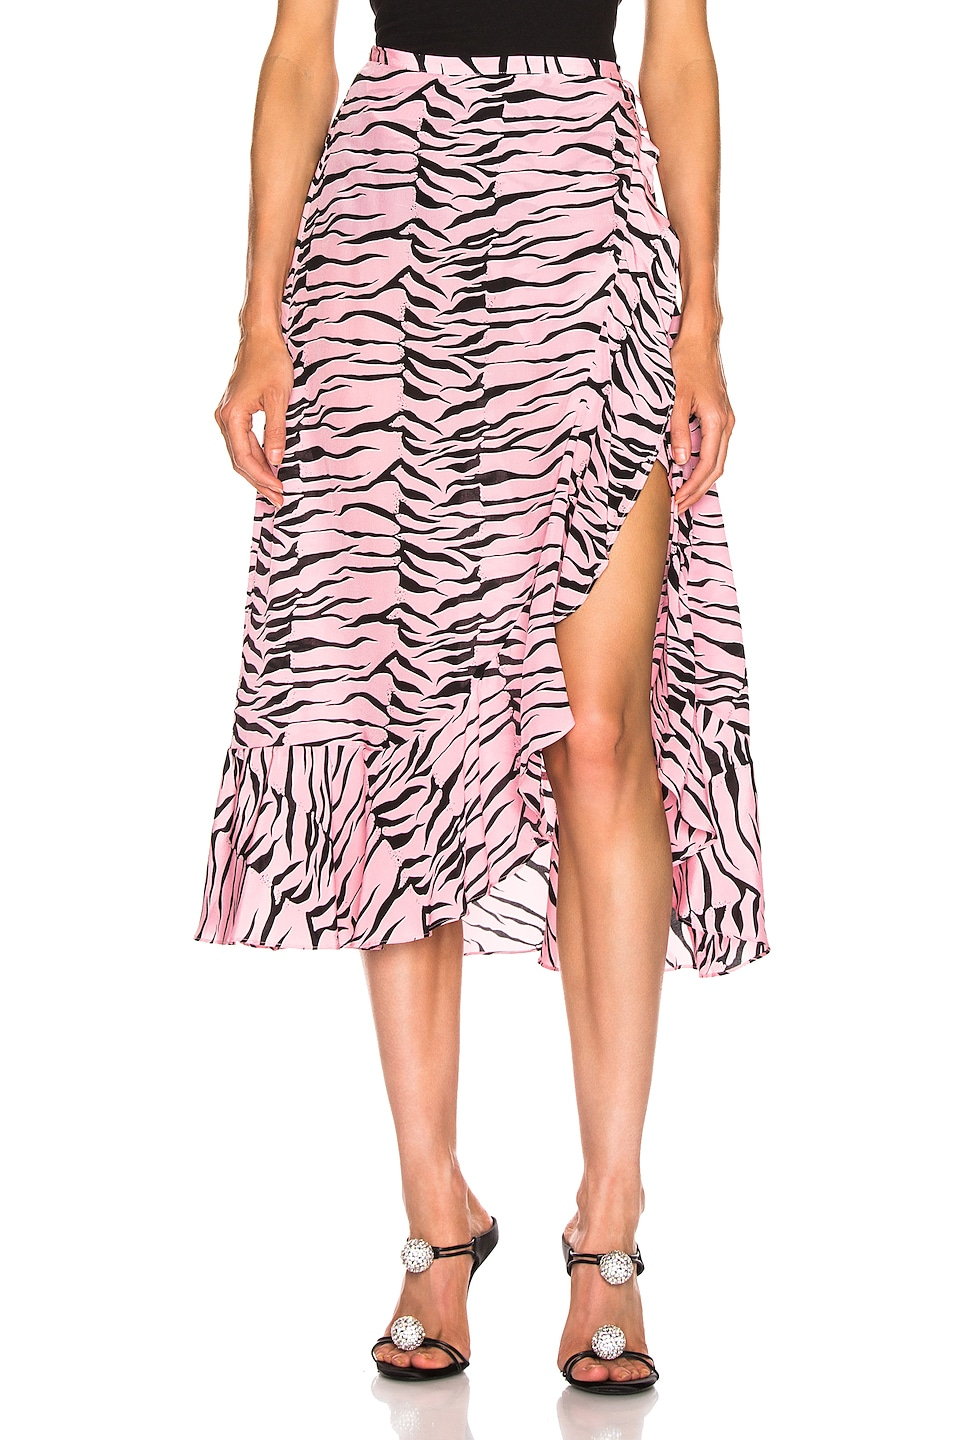 Image 1 of RIXO Gracie Skirt in Pink Black Tiger